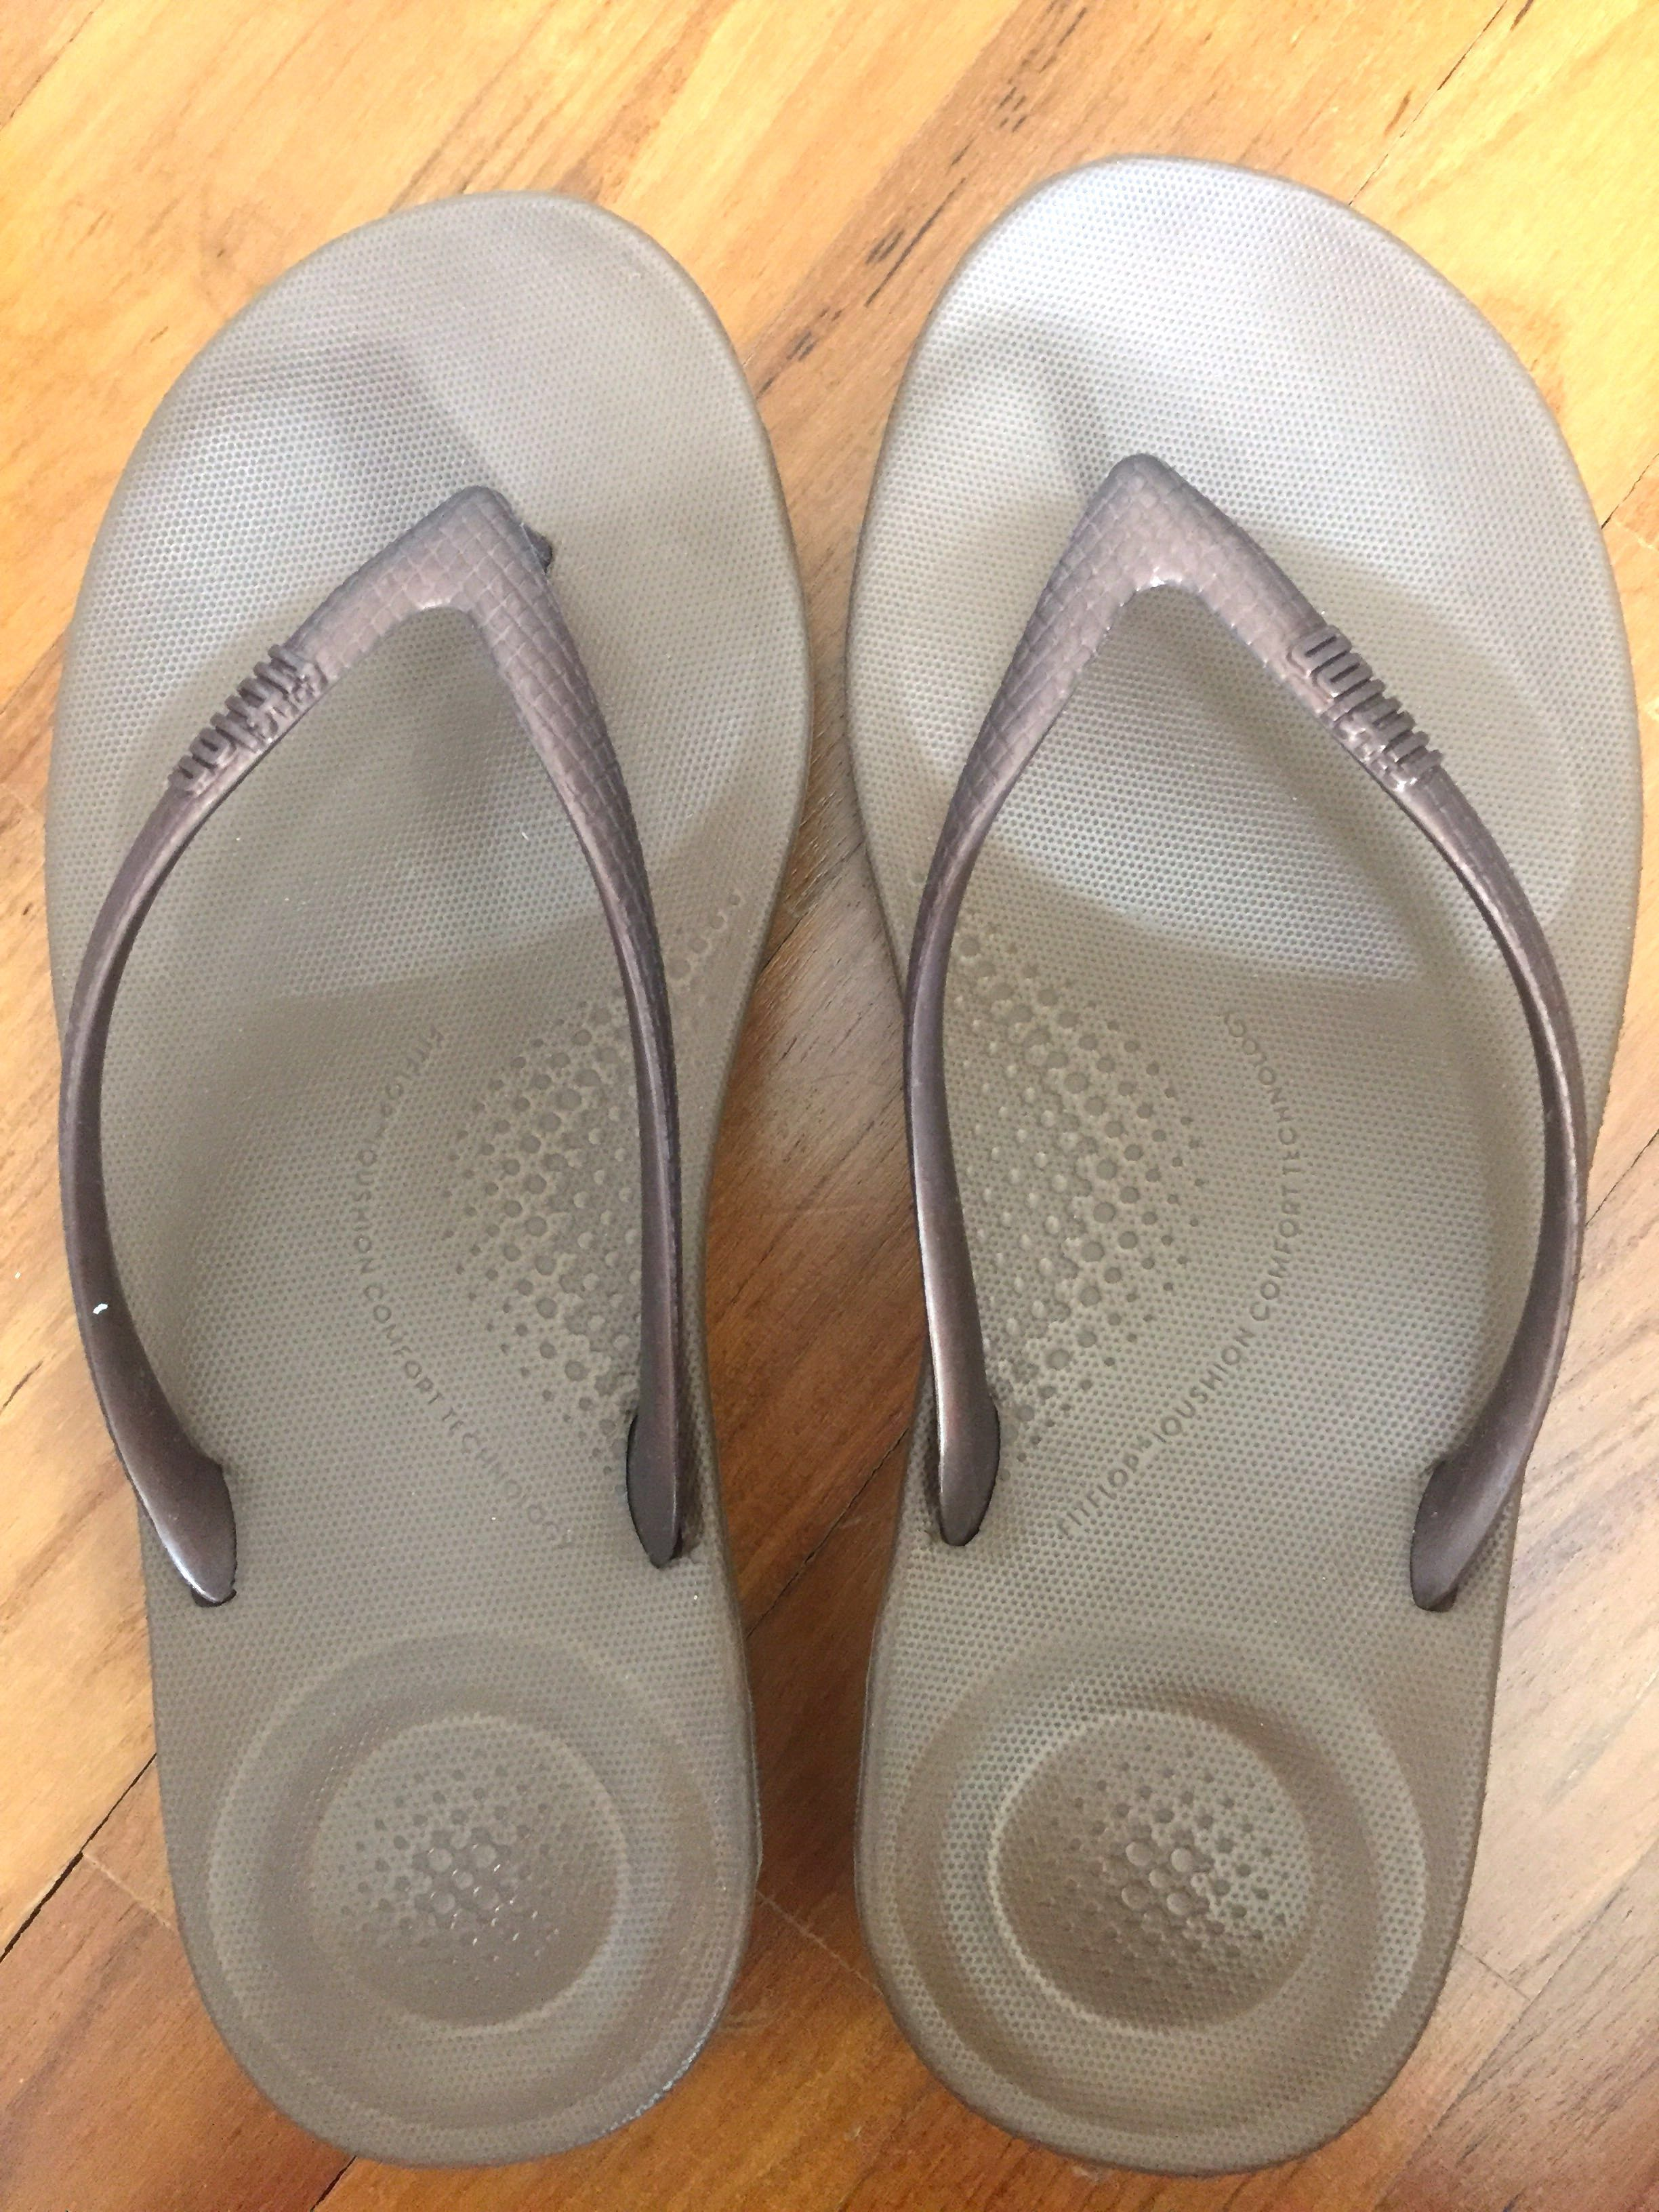 21d58f573 Fitflop Iqushion Ergonomic Flip-flops